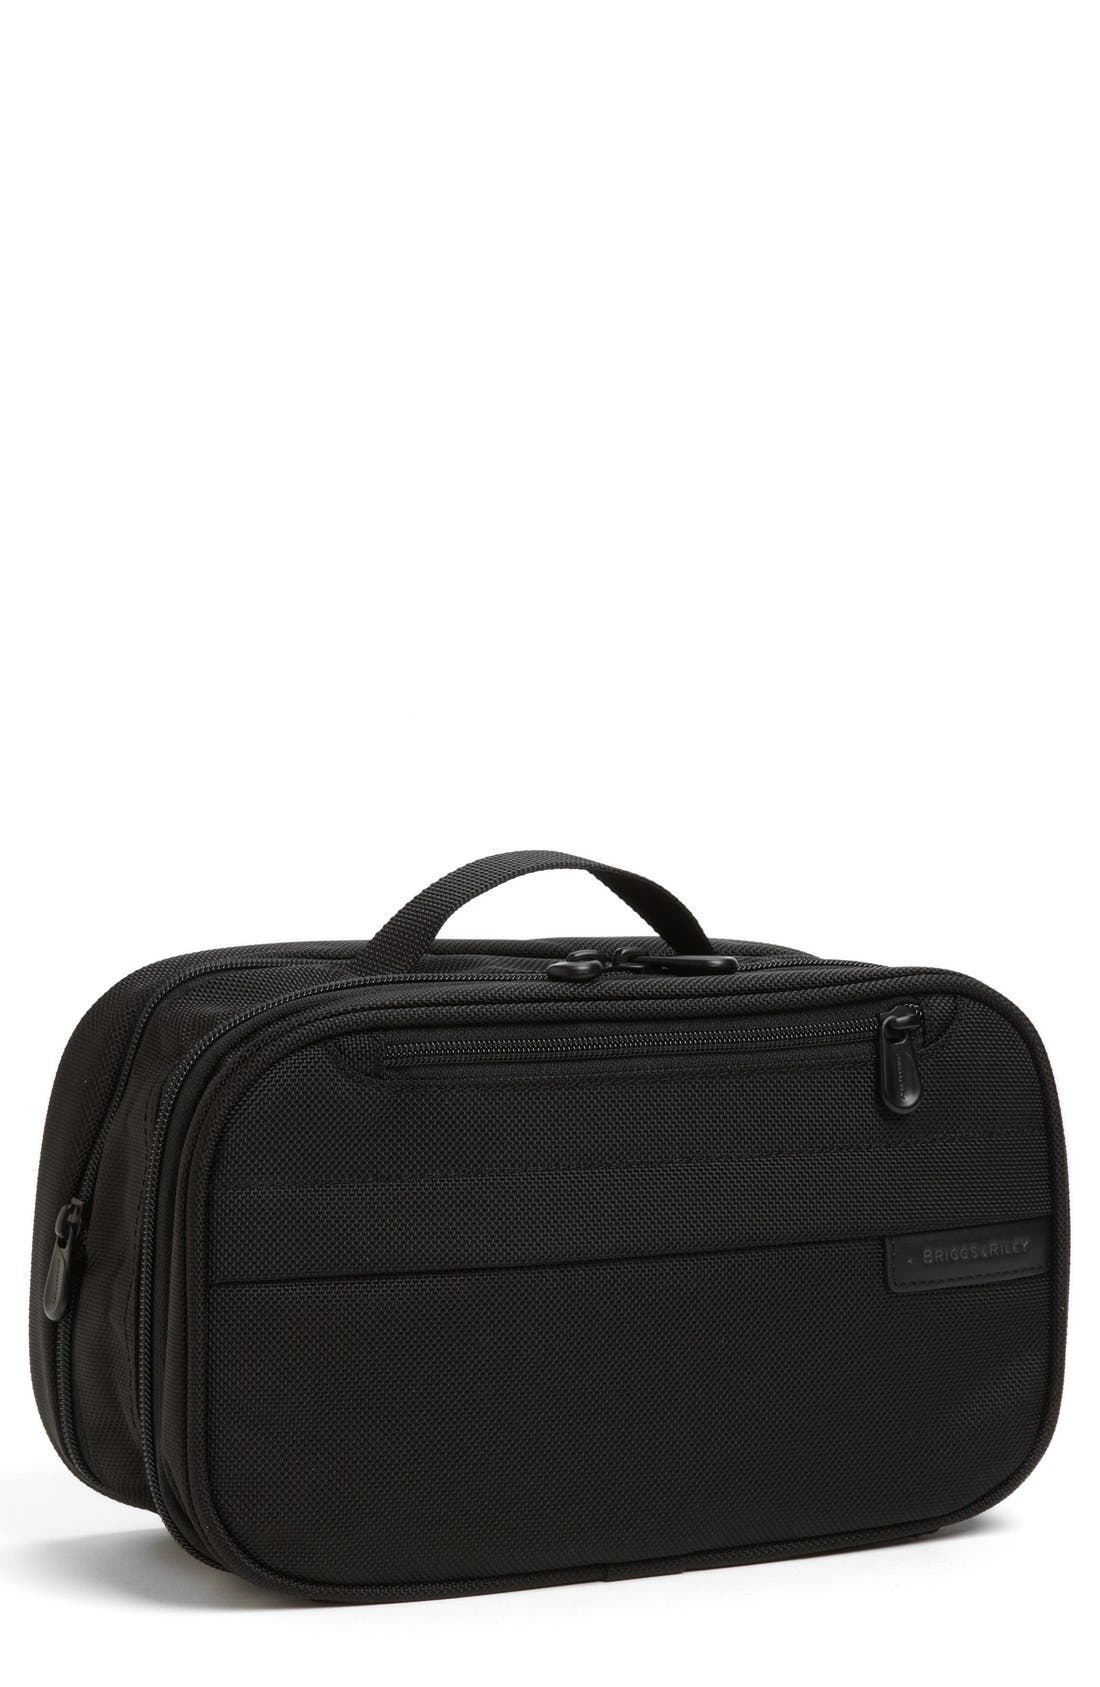 BRIGGS & RILEY,                             Baseline Expandable Toiletry Kit,                             Main thumbnail 1, color,                             BLACK